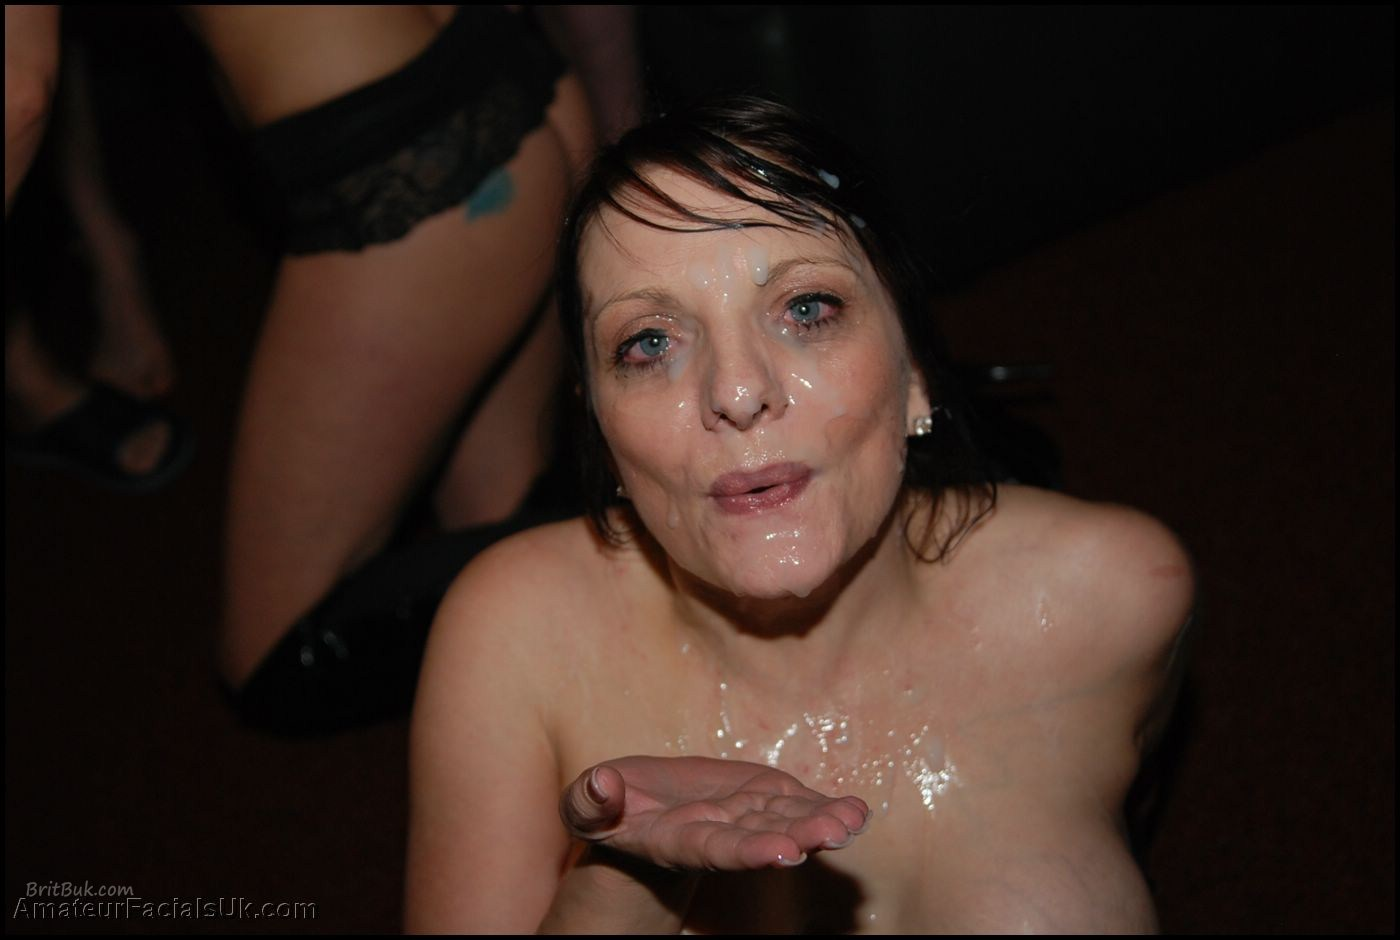 KerryCreamedBritishBrunette BUKKAKE samplesBRITBUK014 Milf Kerry Takes a Cum Bath, She Loves Bukkake as much as We!